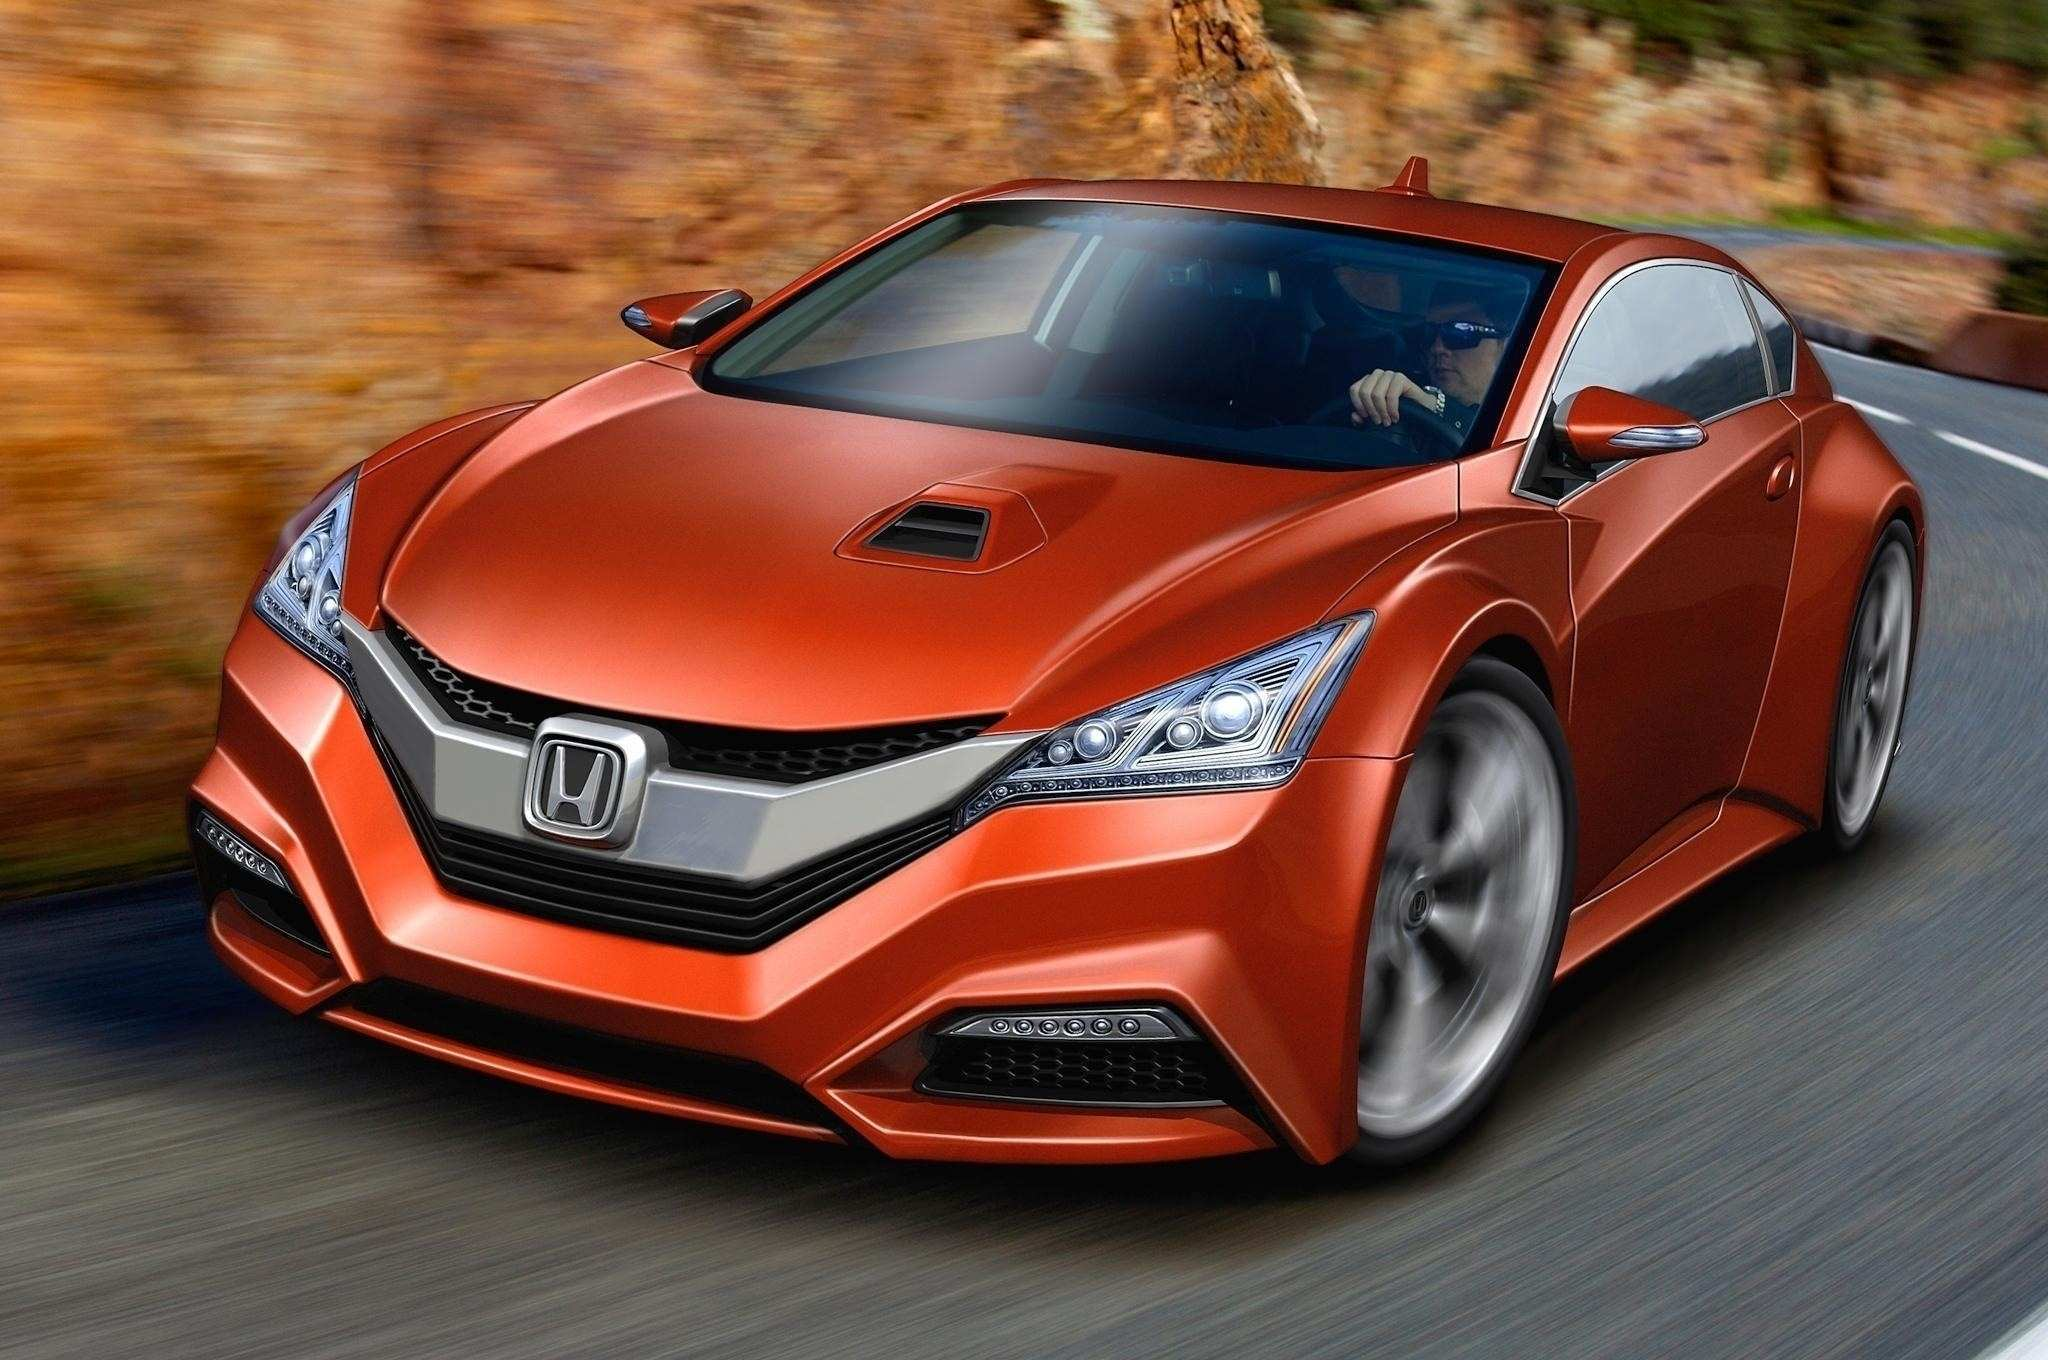 74 All New 2019 Honda Prelude Type R Redesign